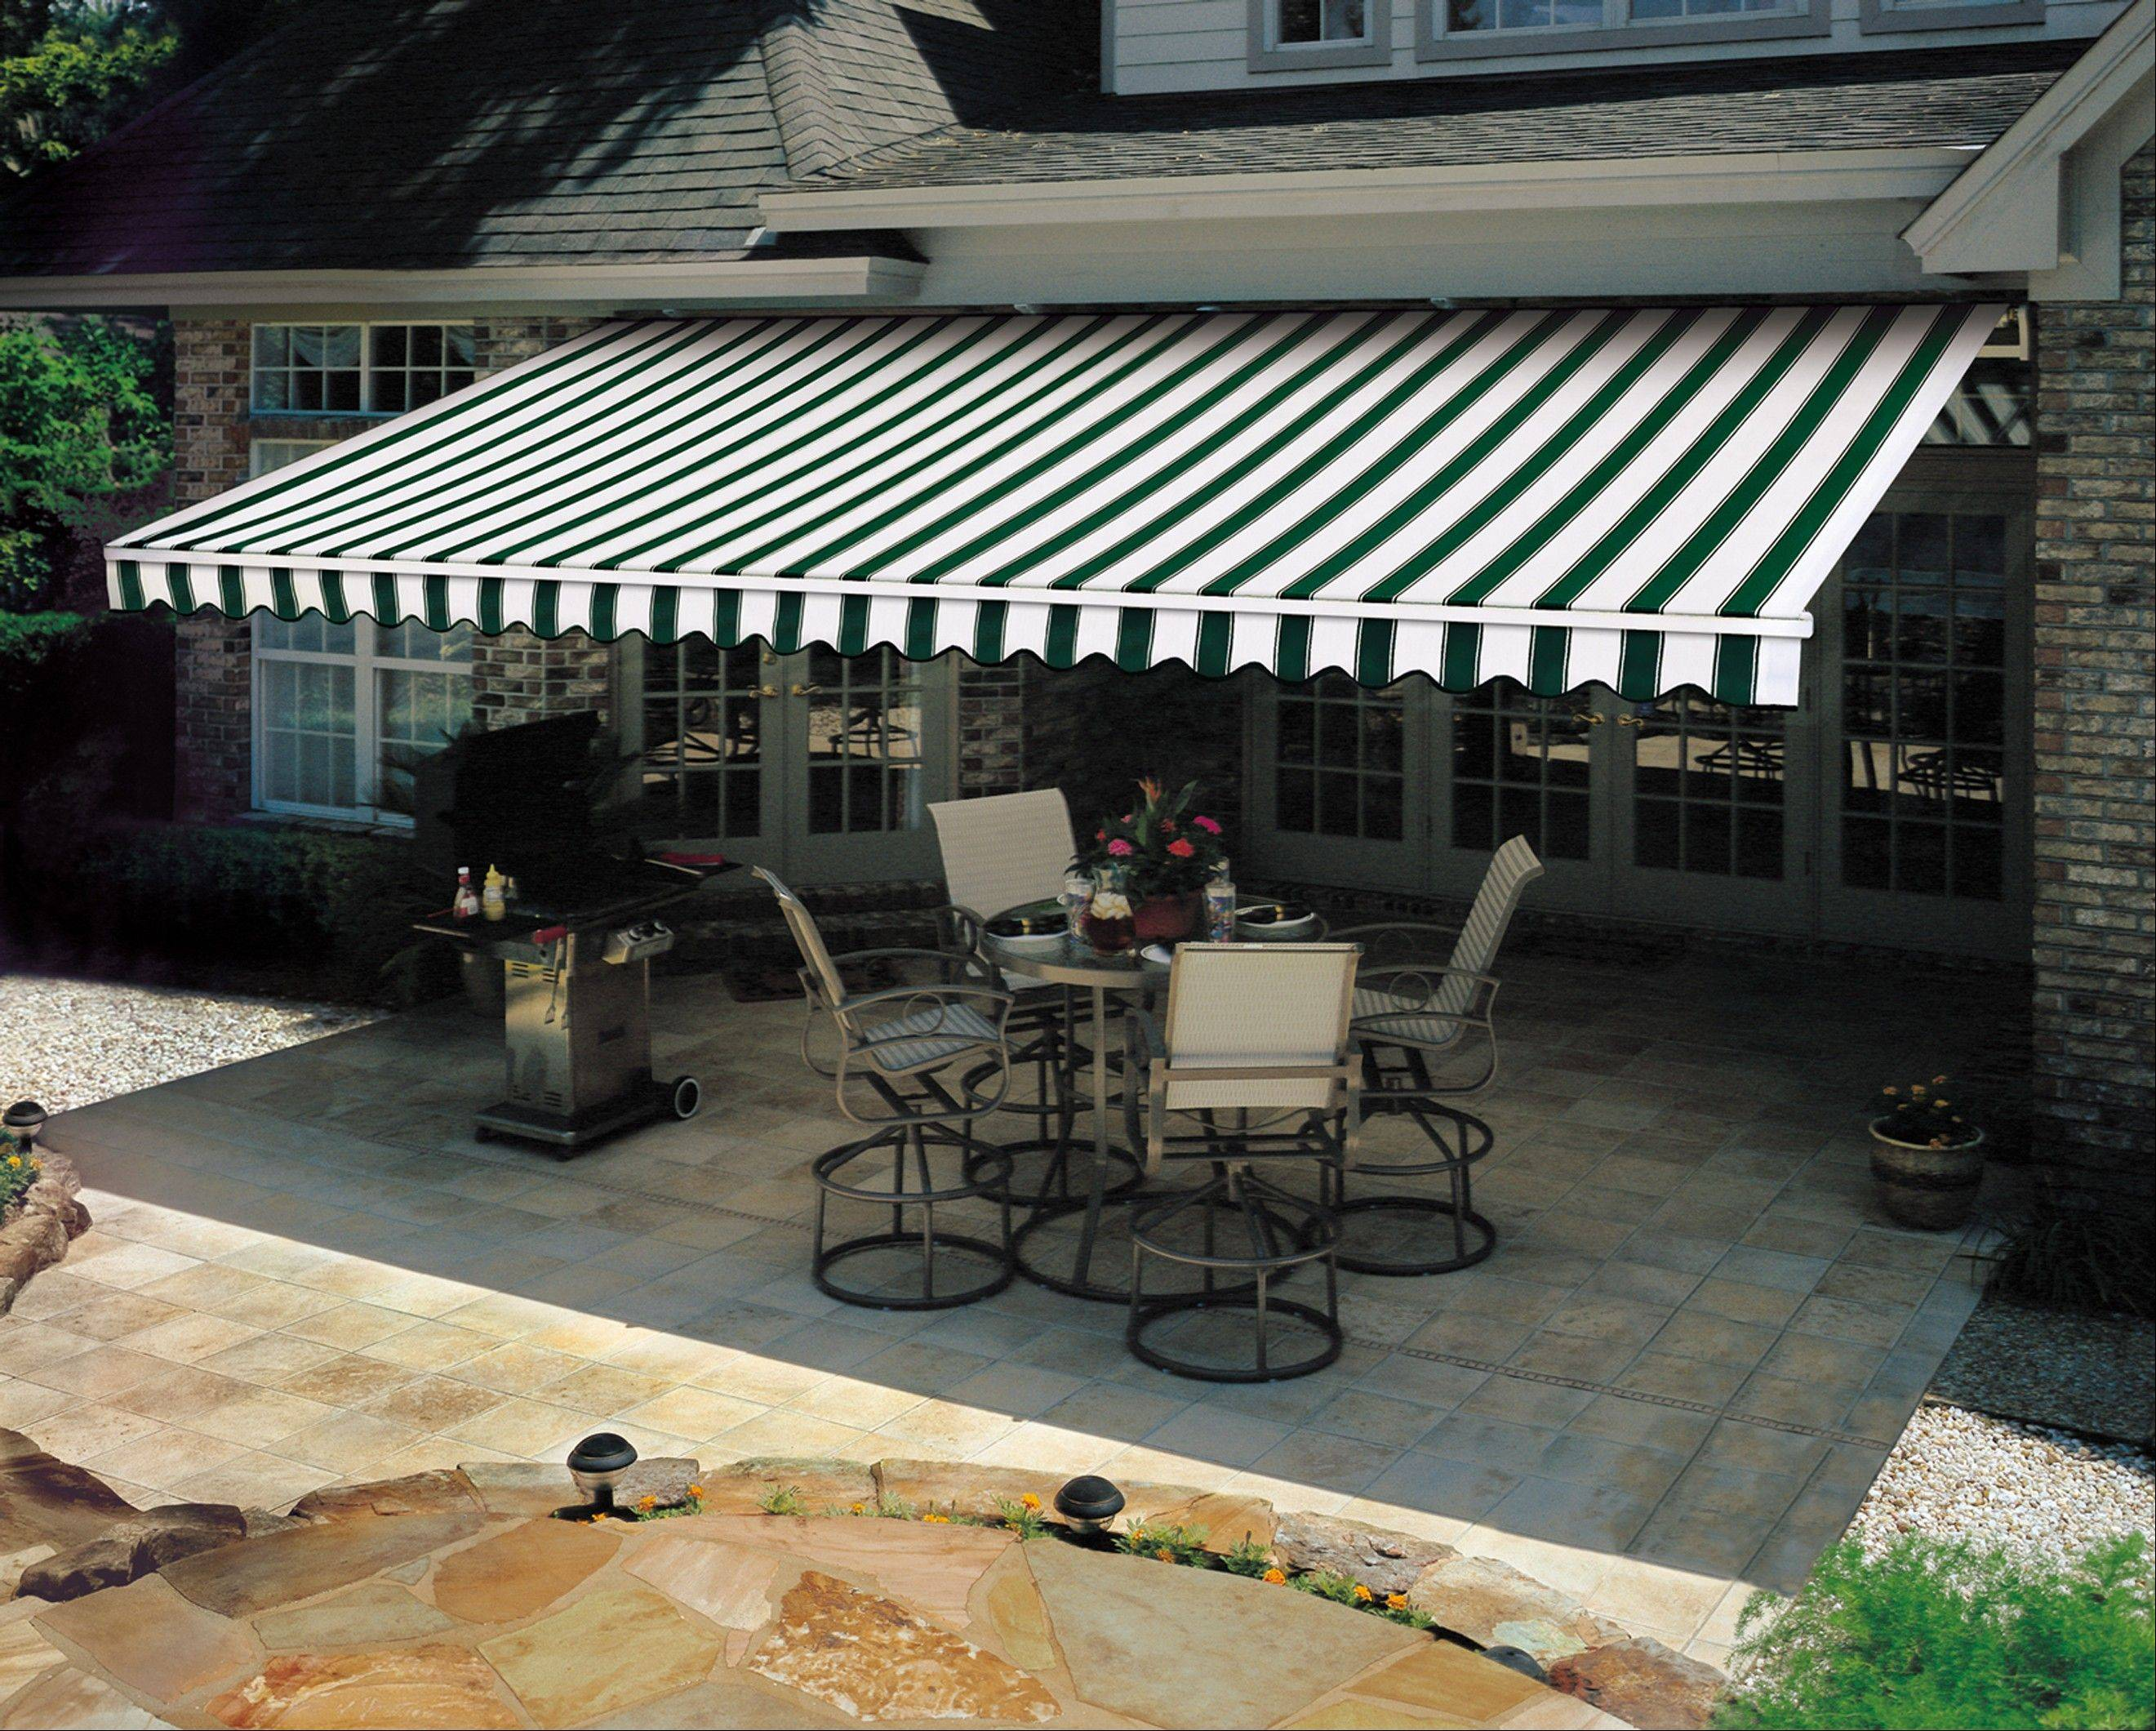 A retractable awning by Sunesta will give you shade when you need it and sun when you want it.